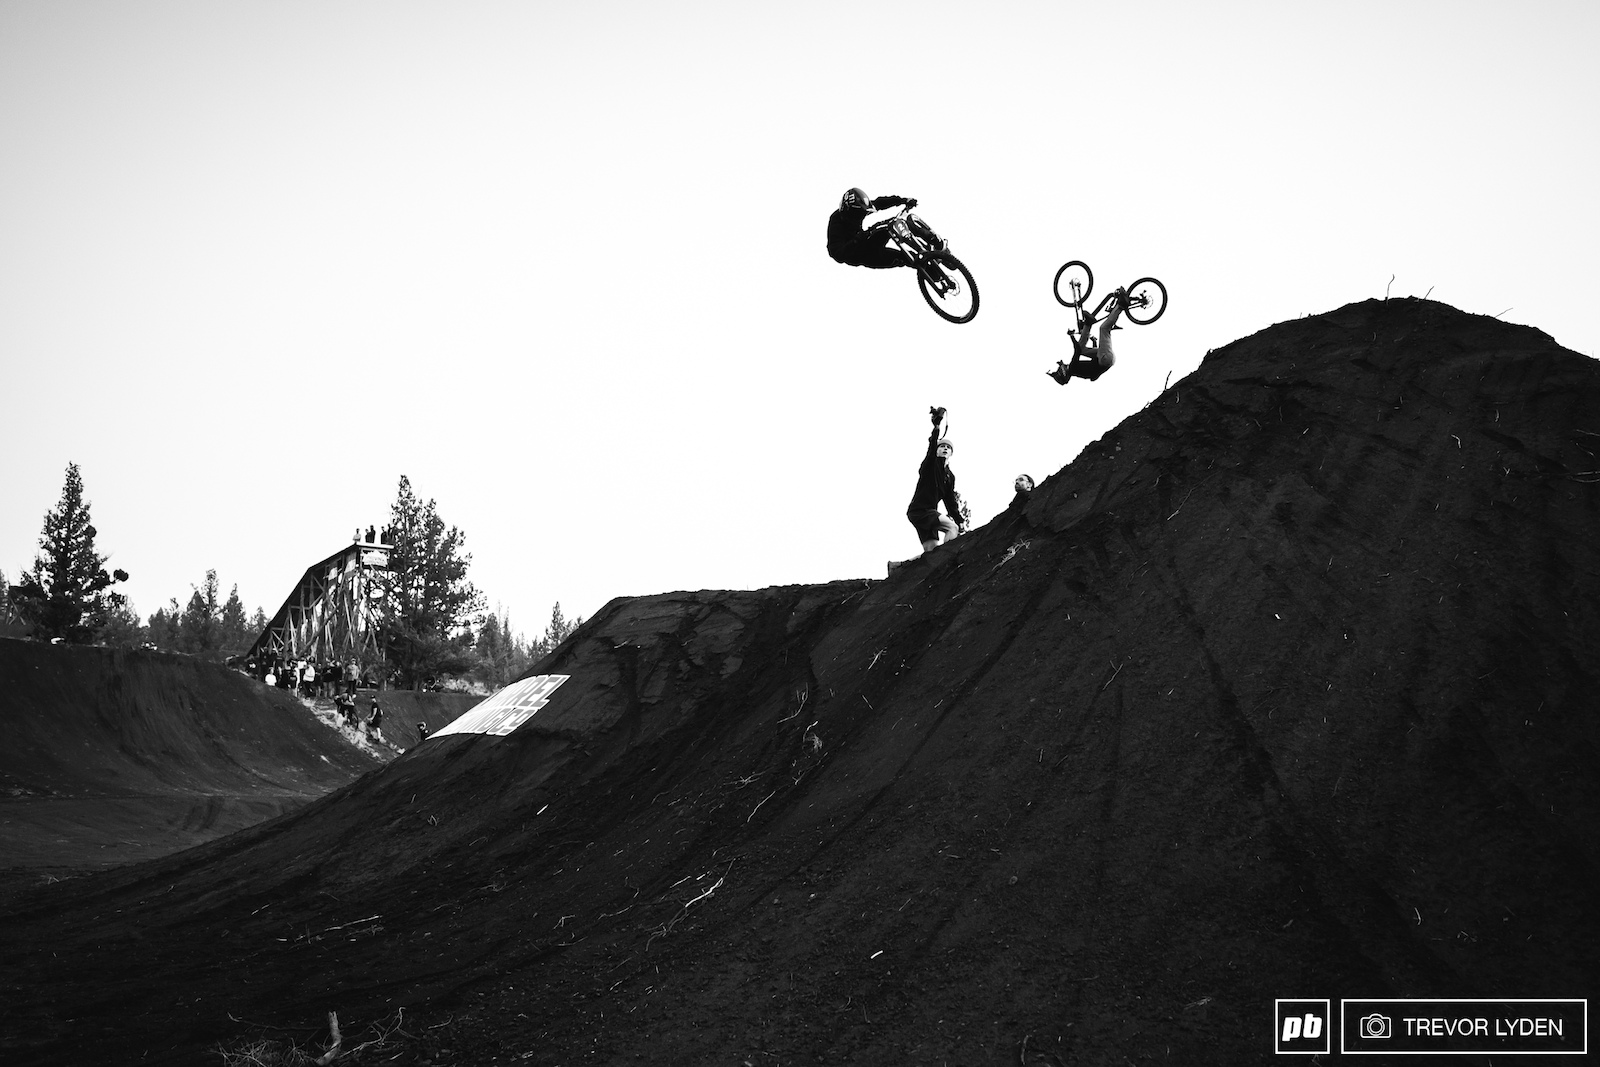 Ethan and David doing synchronized offroad mountain cycling aerobatics.